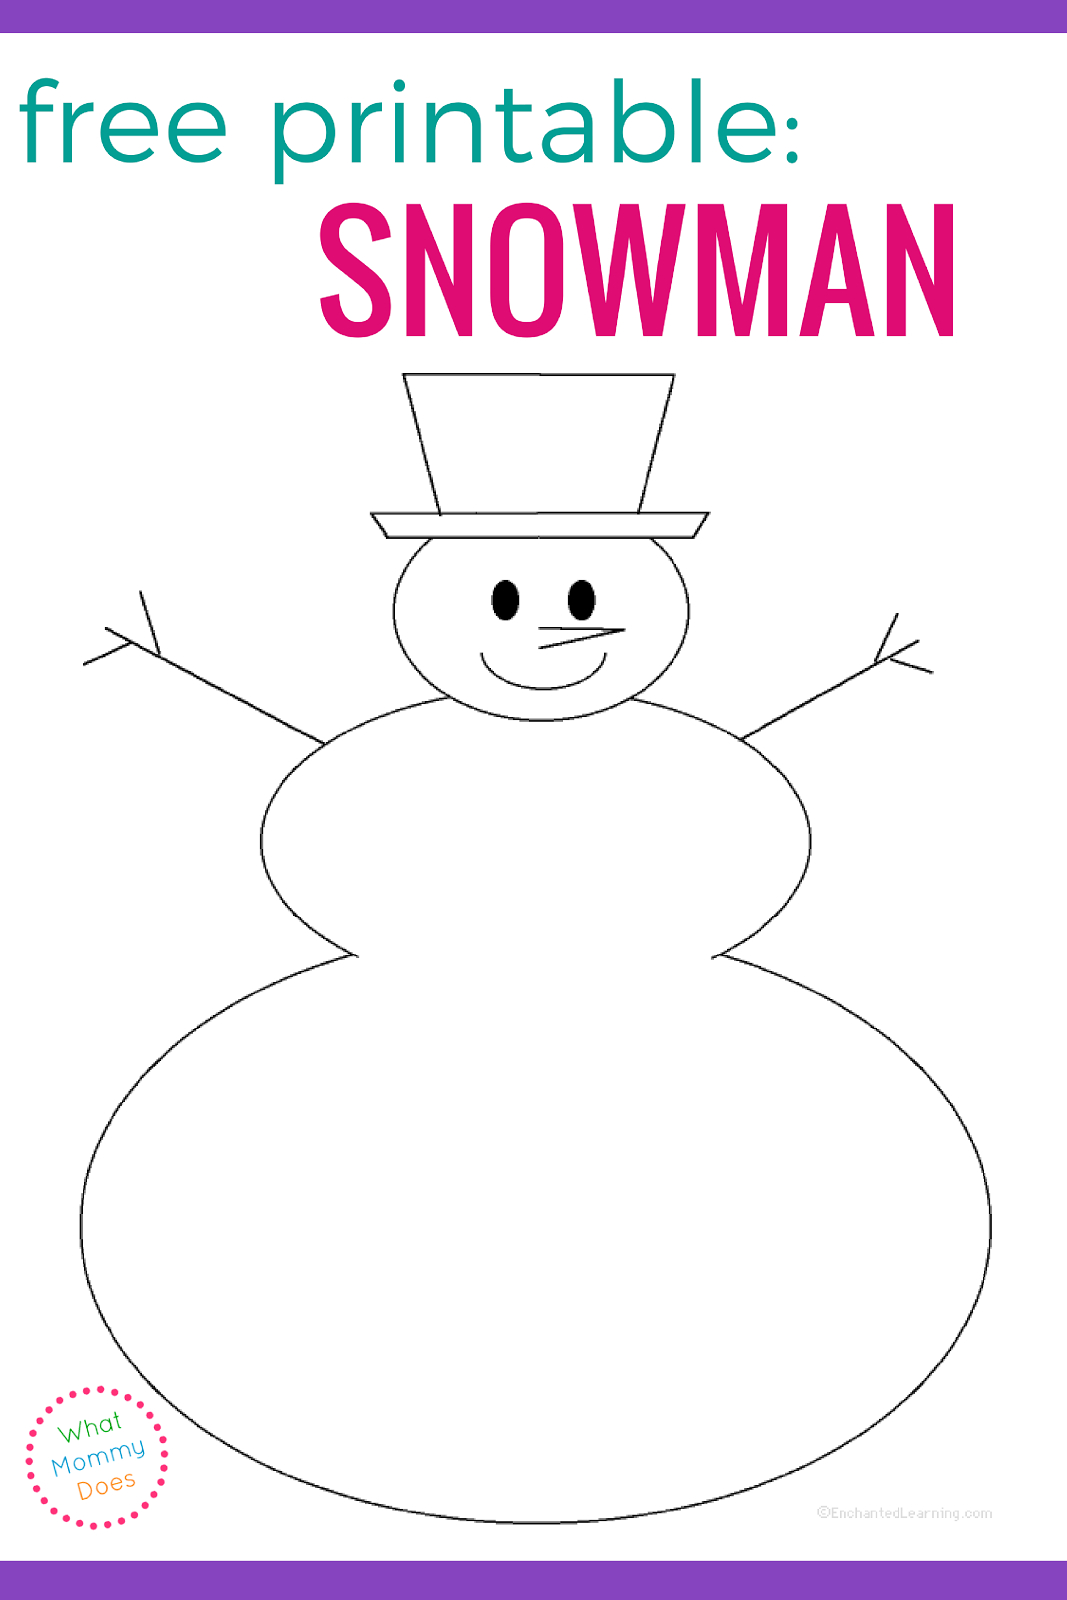 Blank Snowman Templates | Tools | Snowman Faces, Snowman, Face Template - Free Printable Snowman Face Stencils